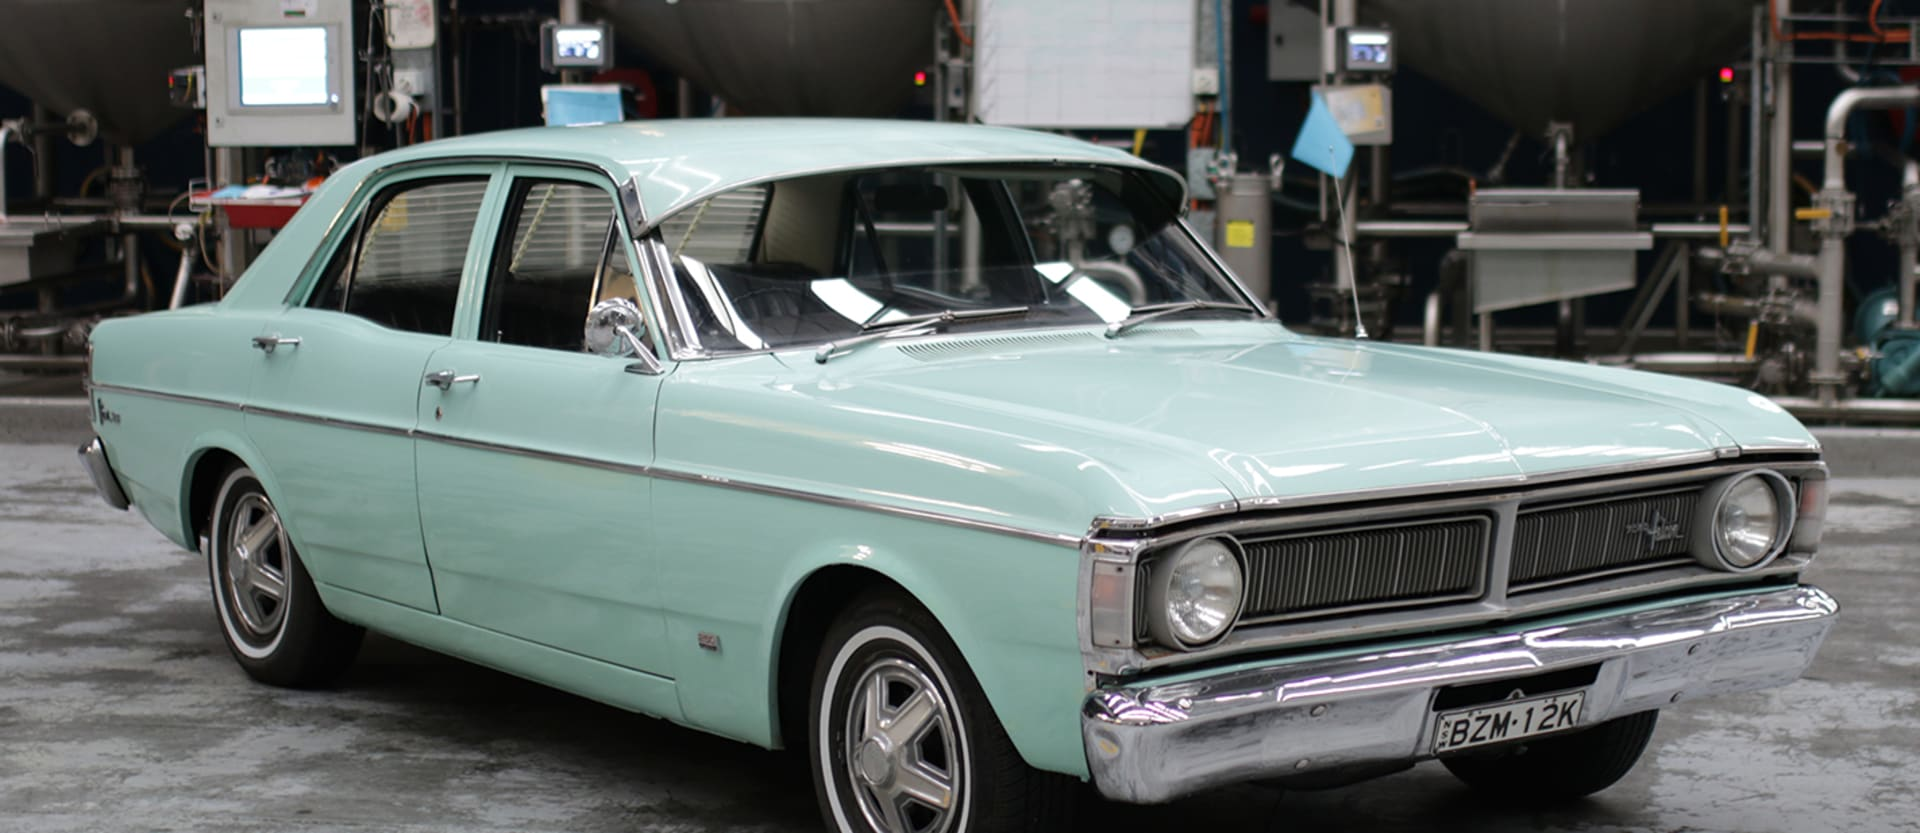 Ford XY Falcon 1 nw